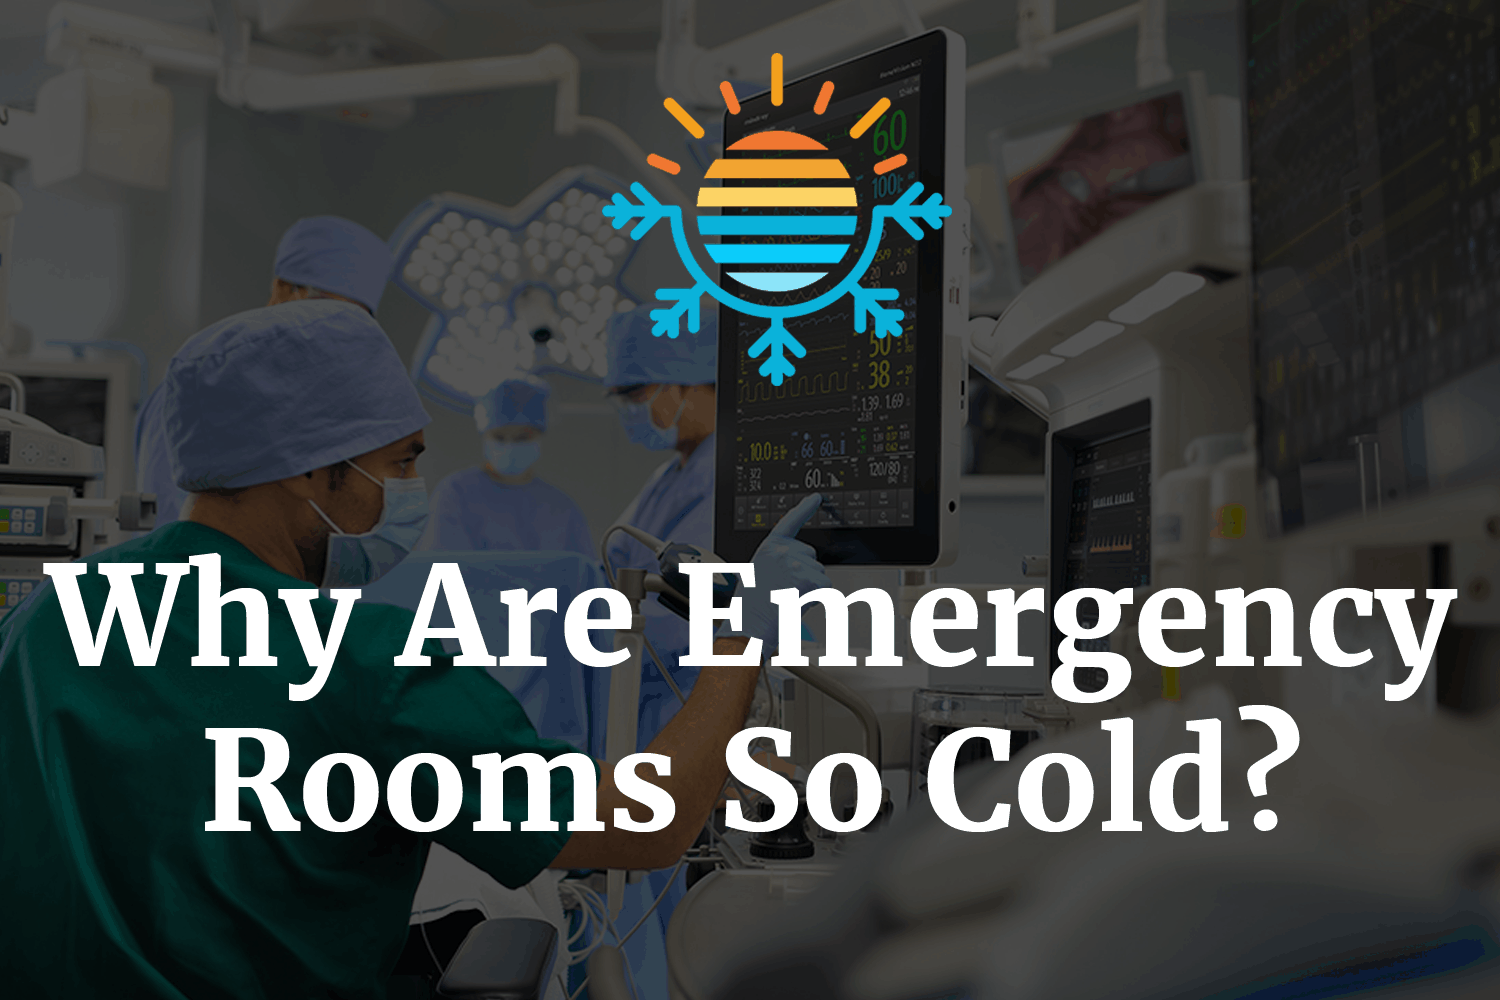 Why Are Emergency Rooms So Cold?